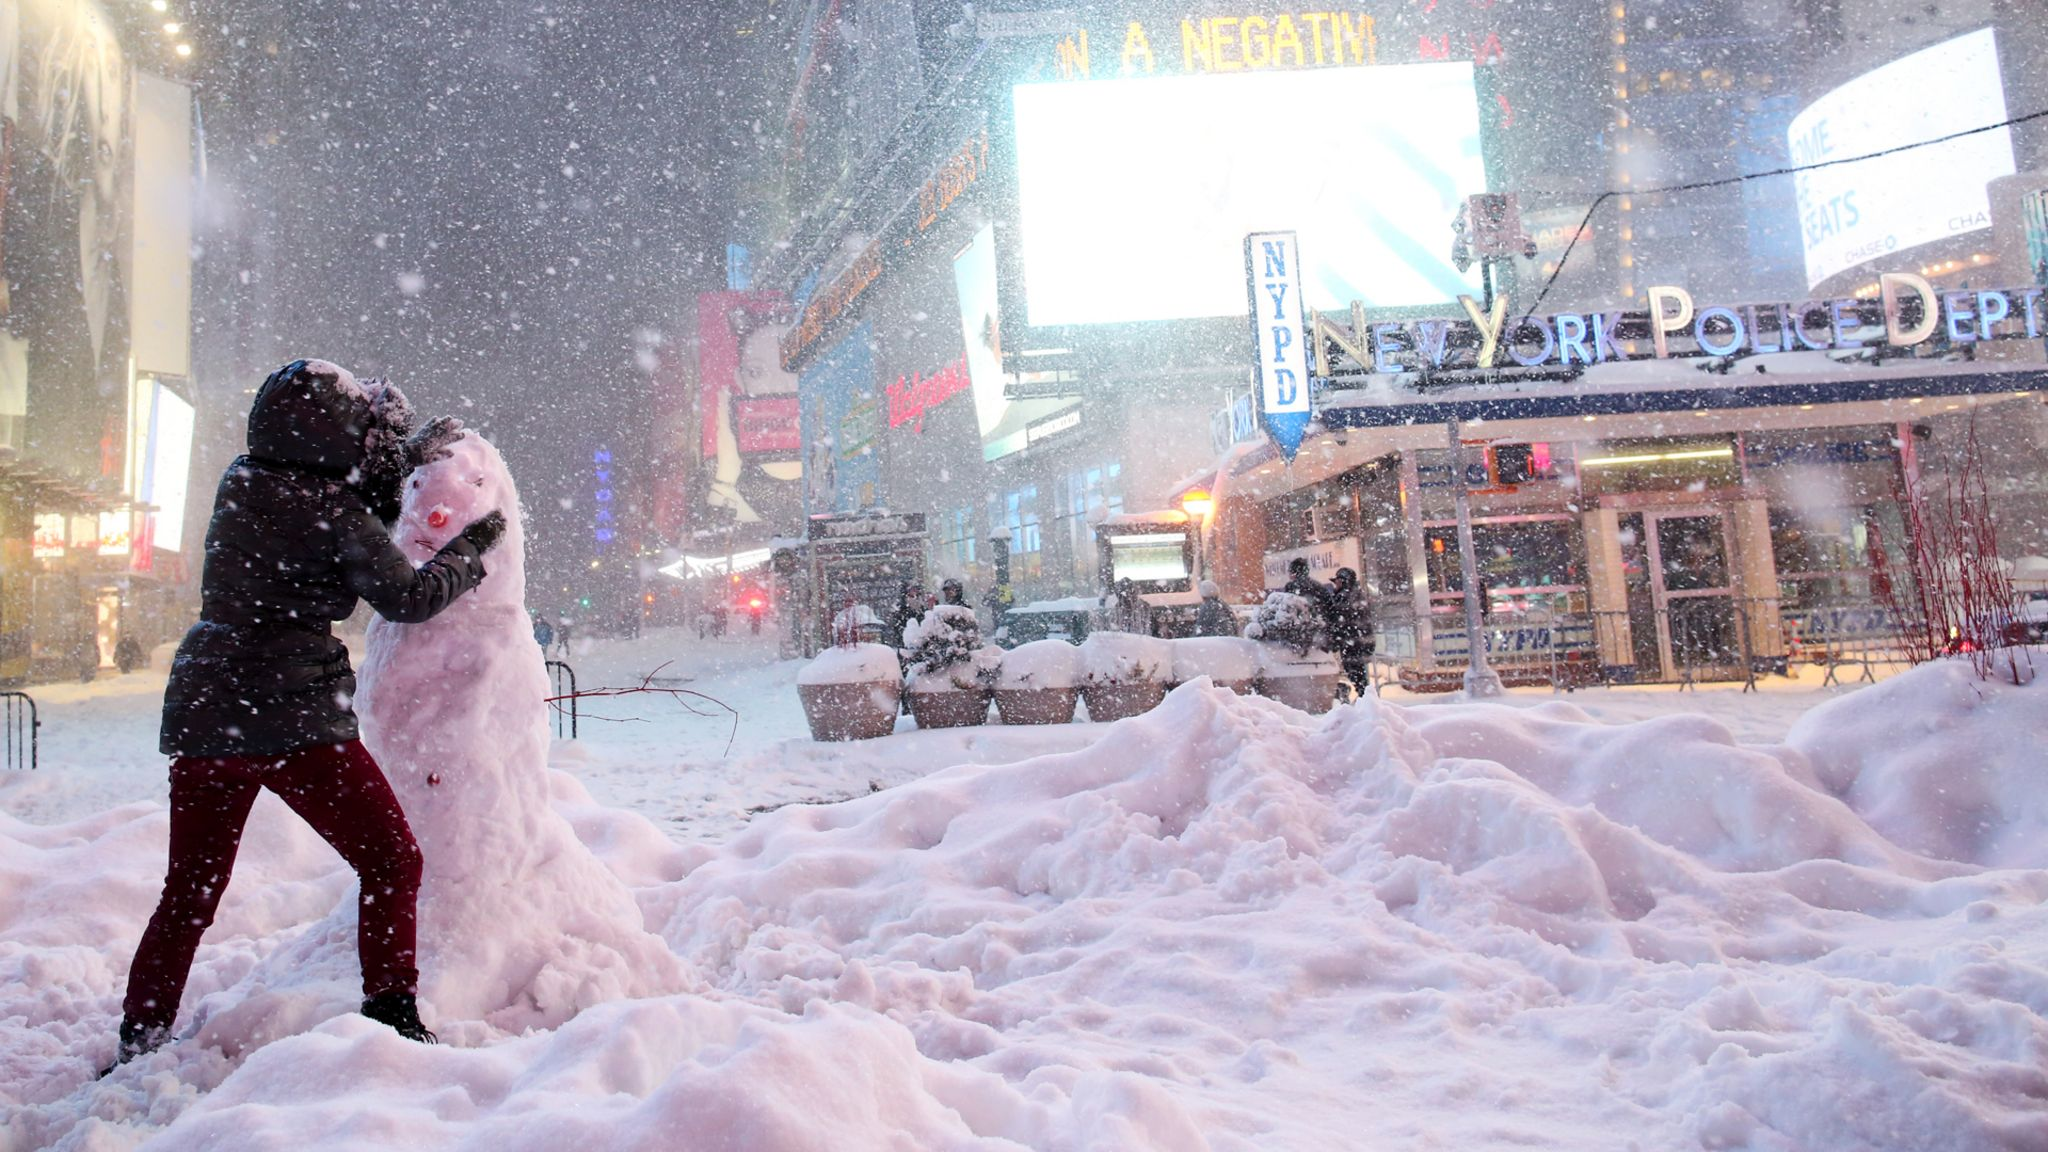 A snow storm in New York